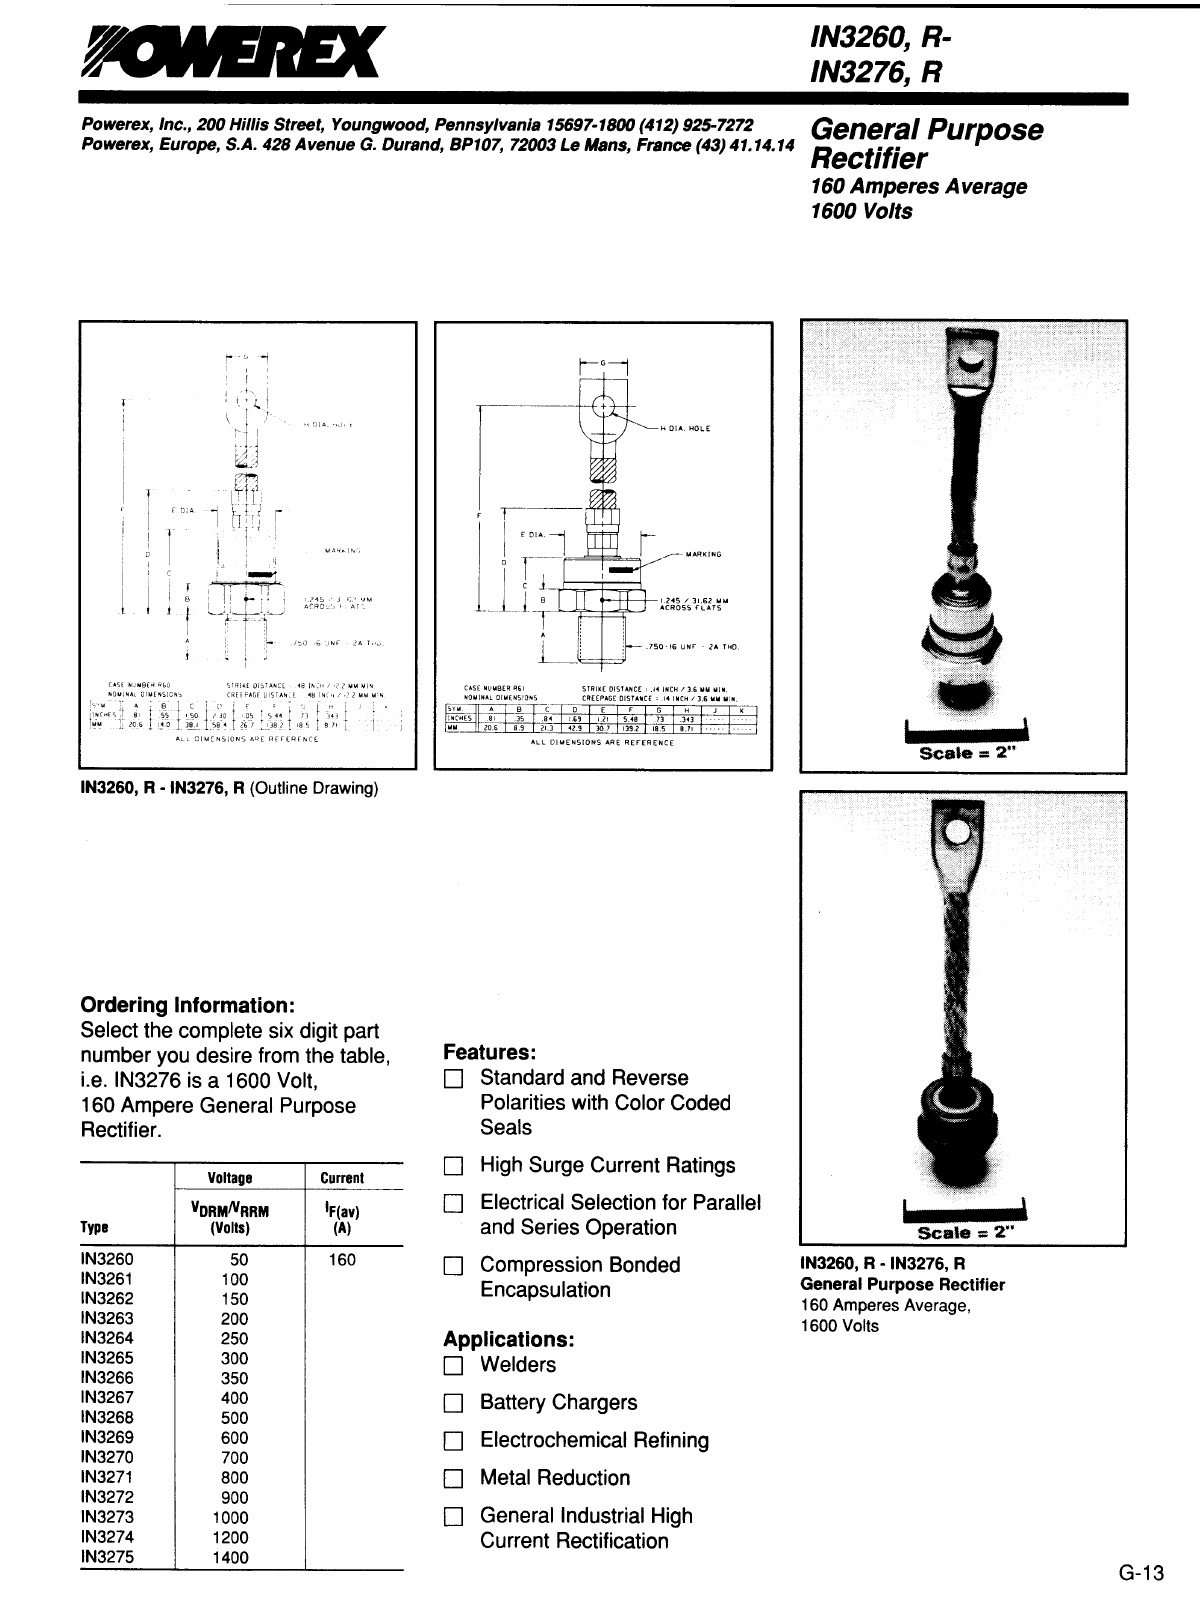 R-IN3261 datasheet